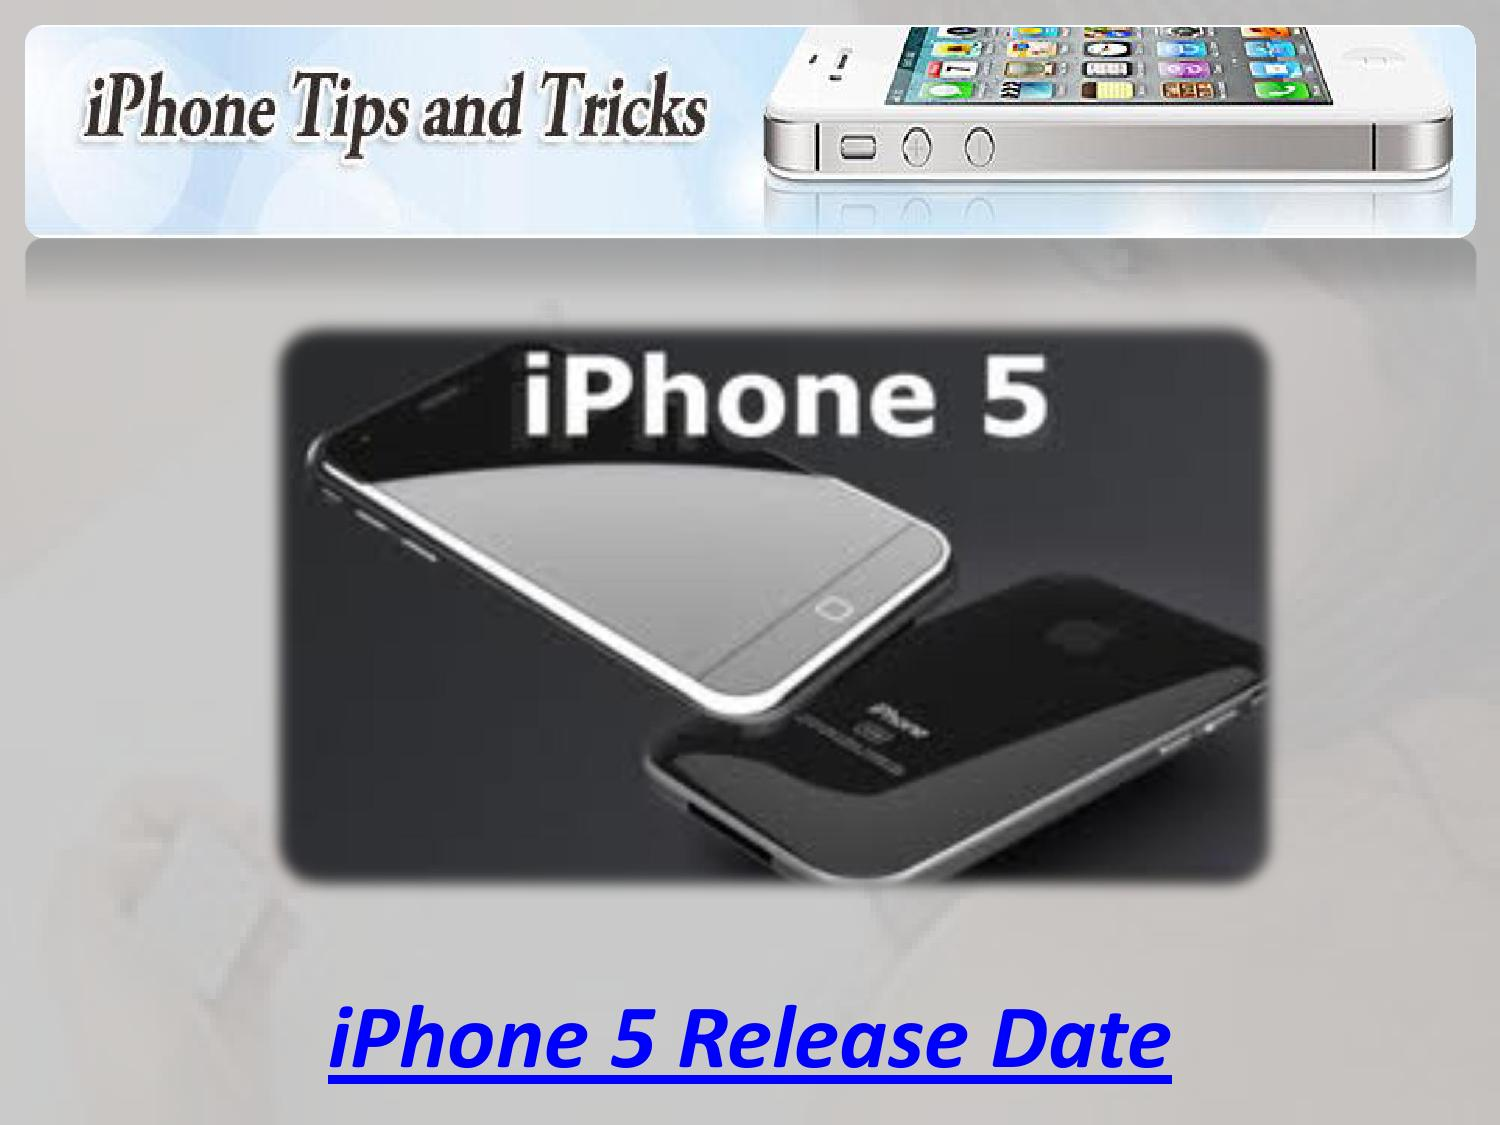 iphone 5 launch date iphone 5 release date by iphone 5 release date issuu 14533